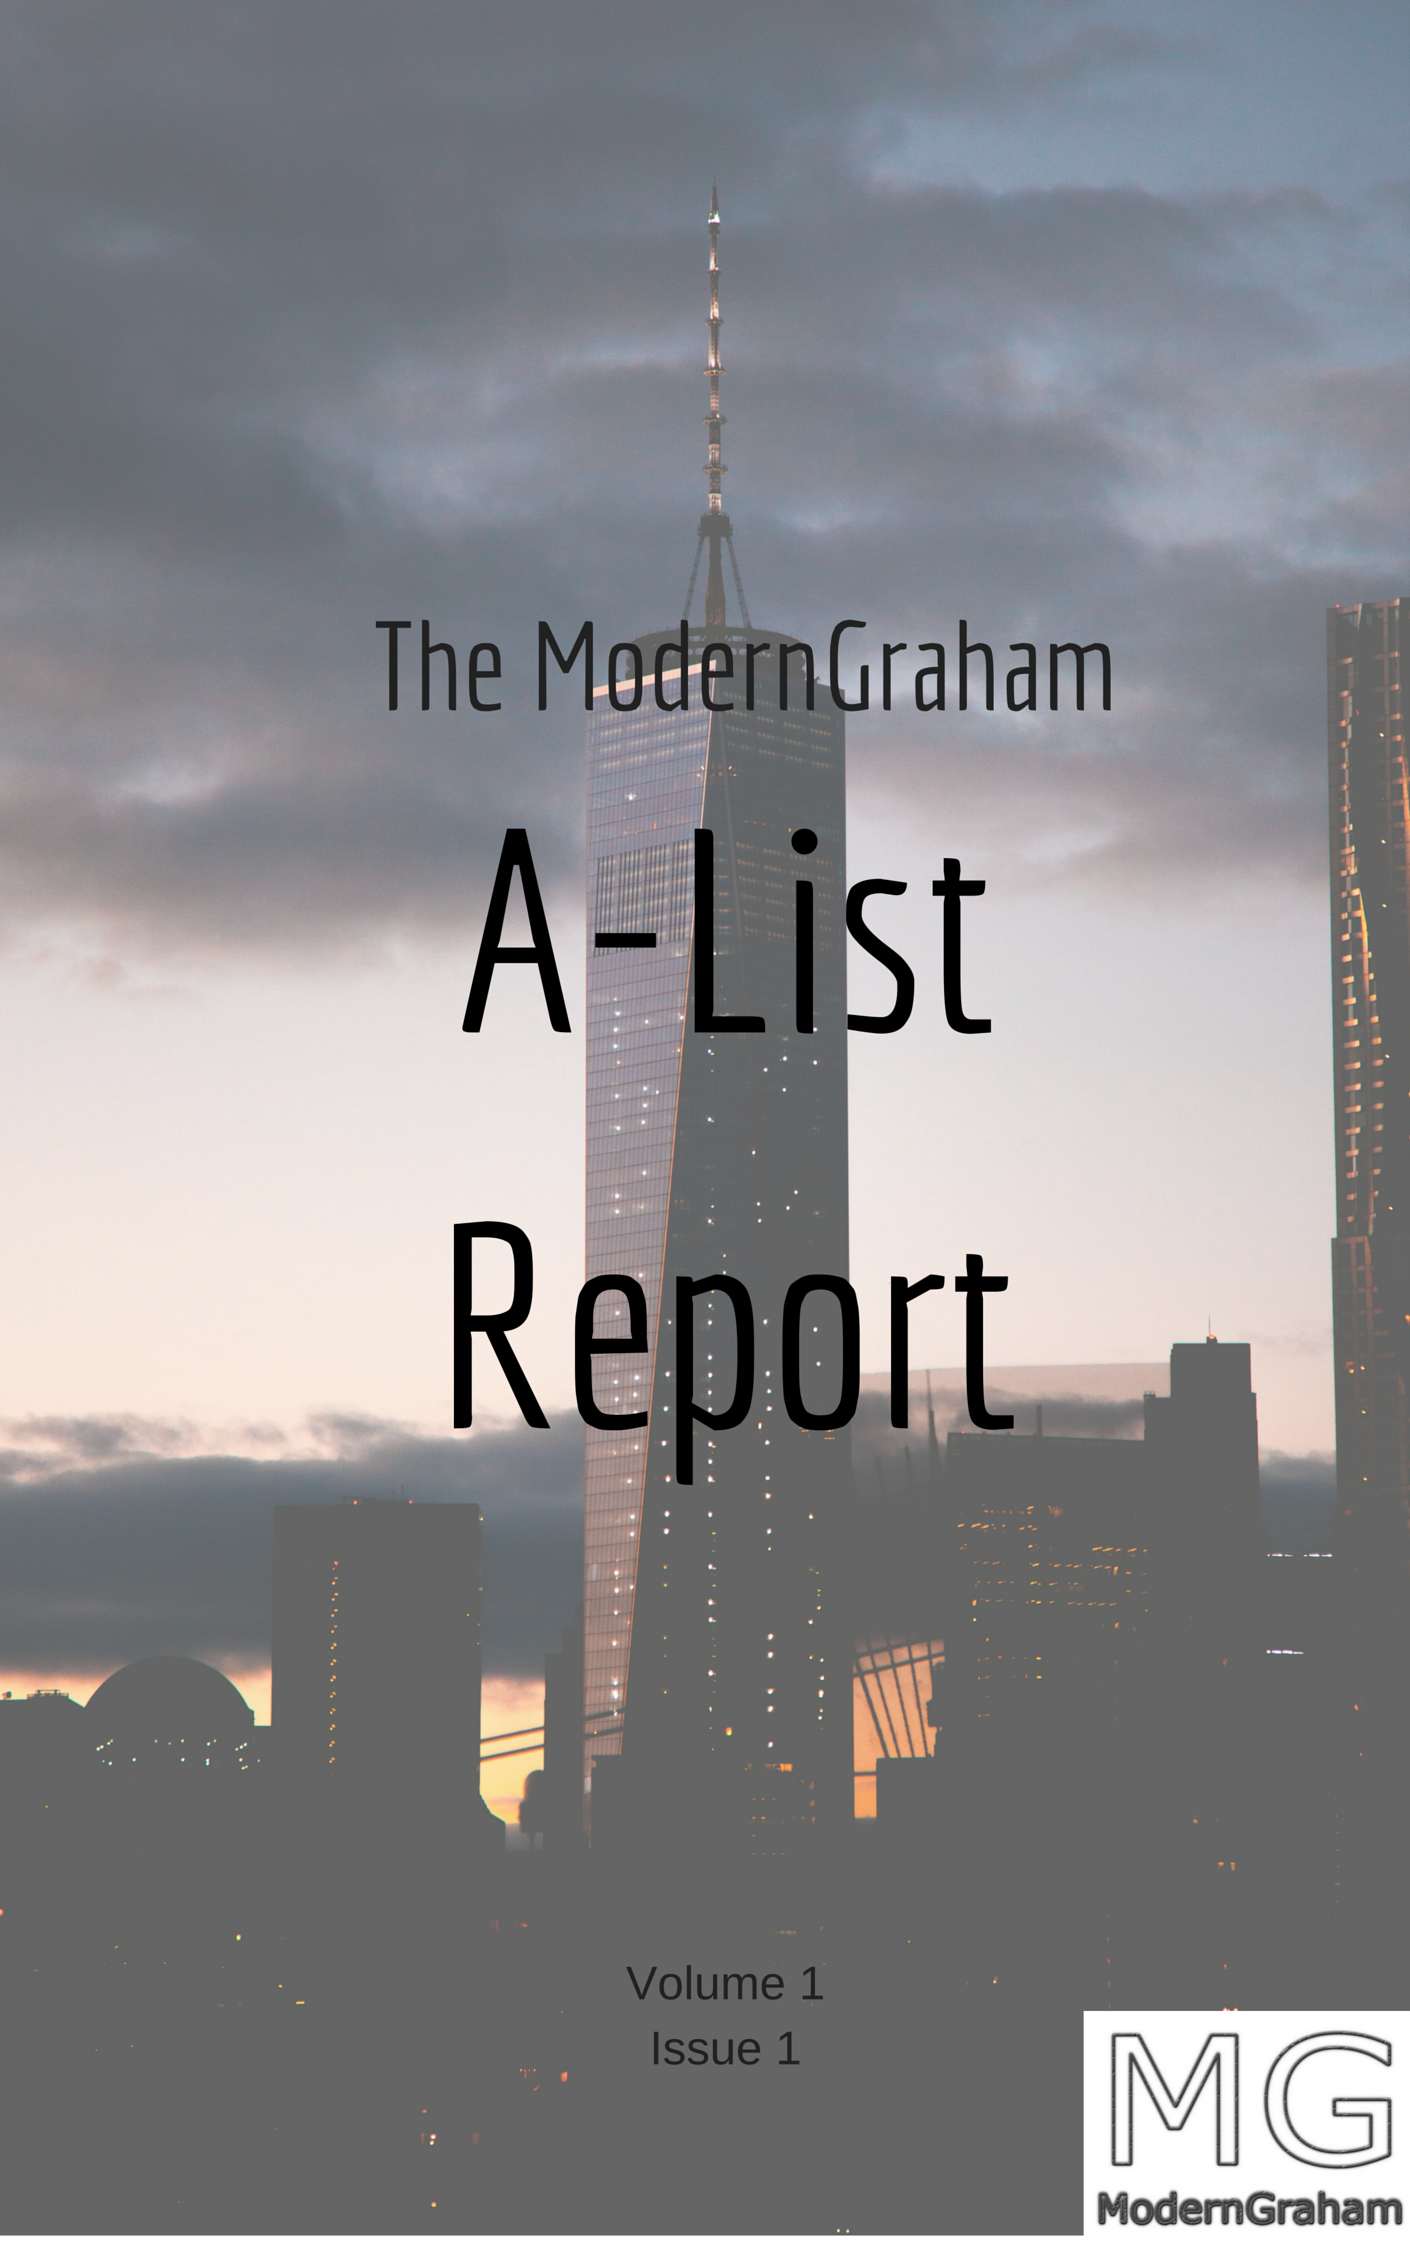 The Summer Issue of the ModernGraham A-List Report